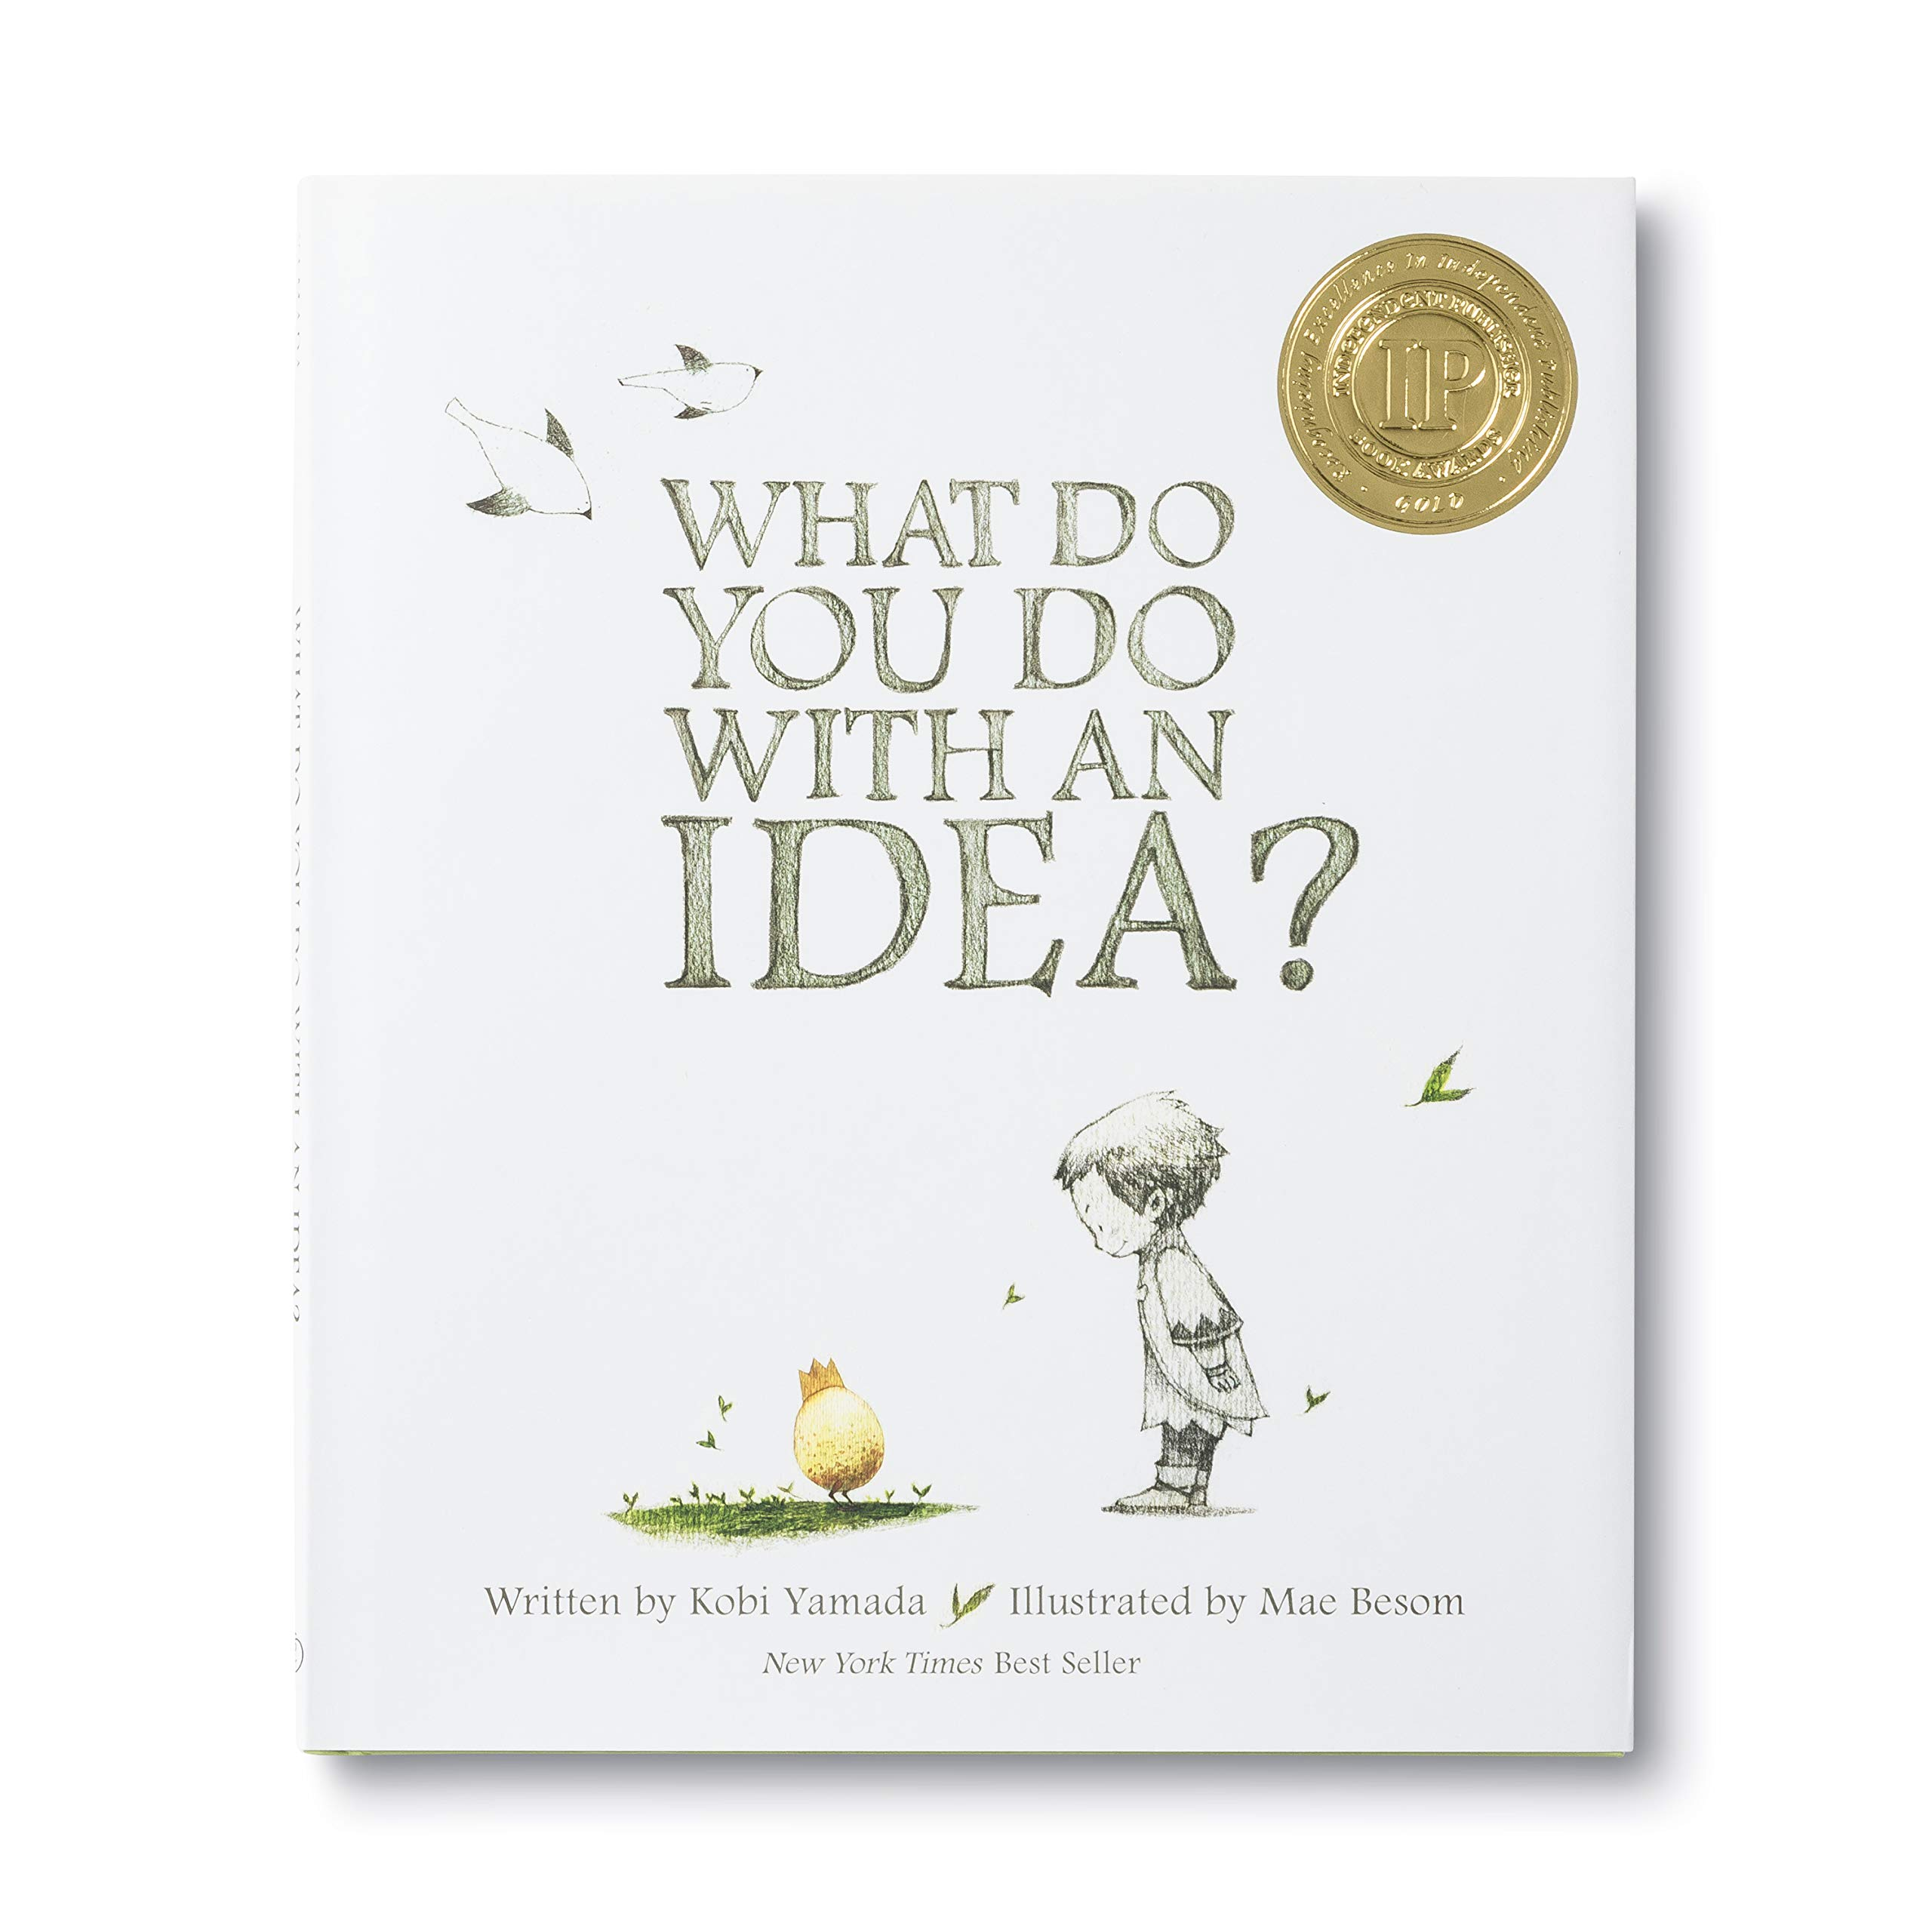 What Do You Do with an Idea?: Yamada, Kobi, Besom, Mae: 9781938298073: Books - Amazon.ca